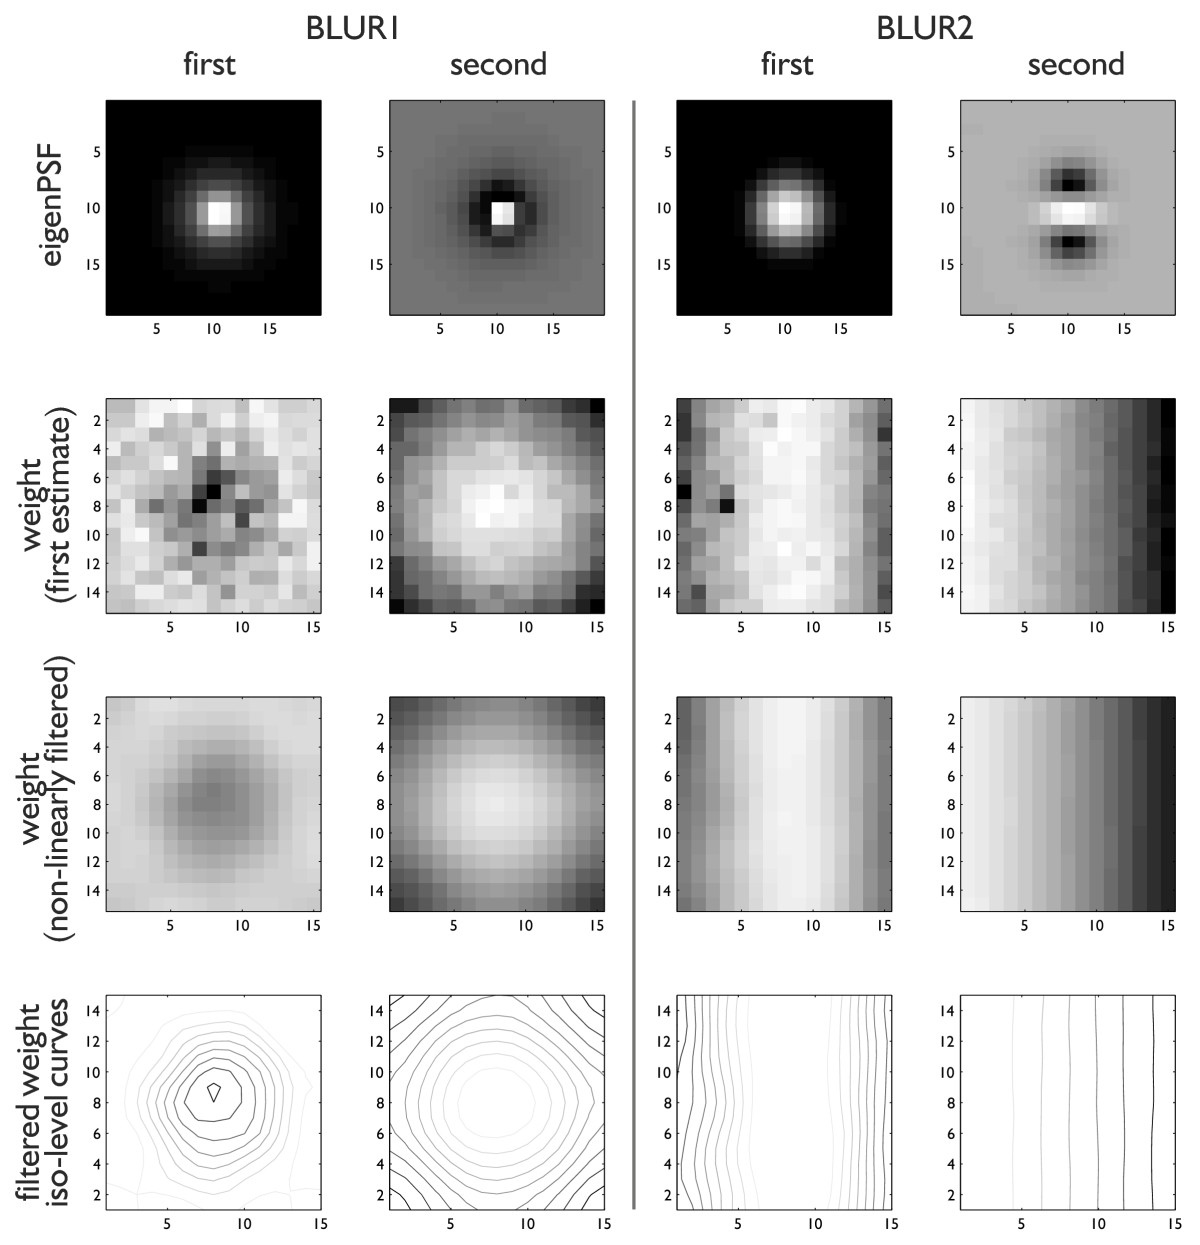 http://static-content.springer.com/image/art%3A10.1186%2F1687-6180-2012-193/MediaObjects/13634_2012_Article_299_Fig6_HTML.jpg